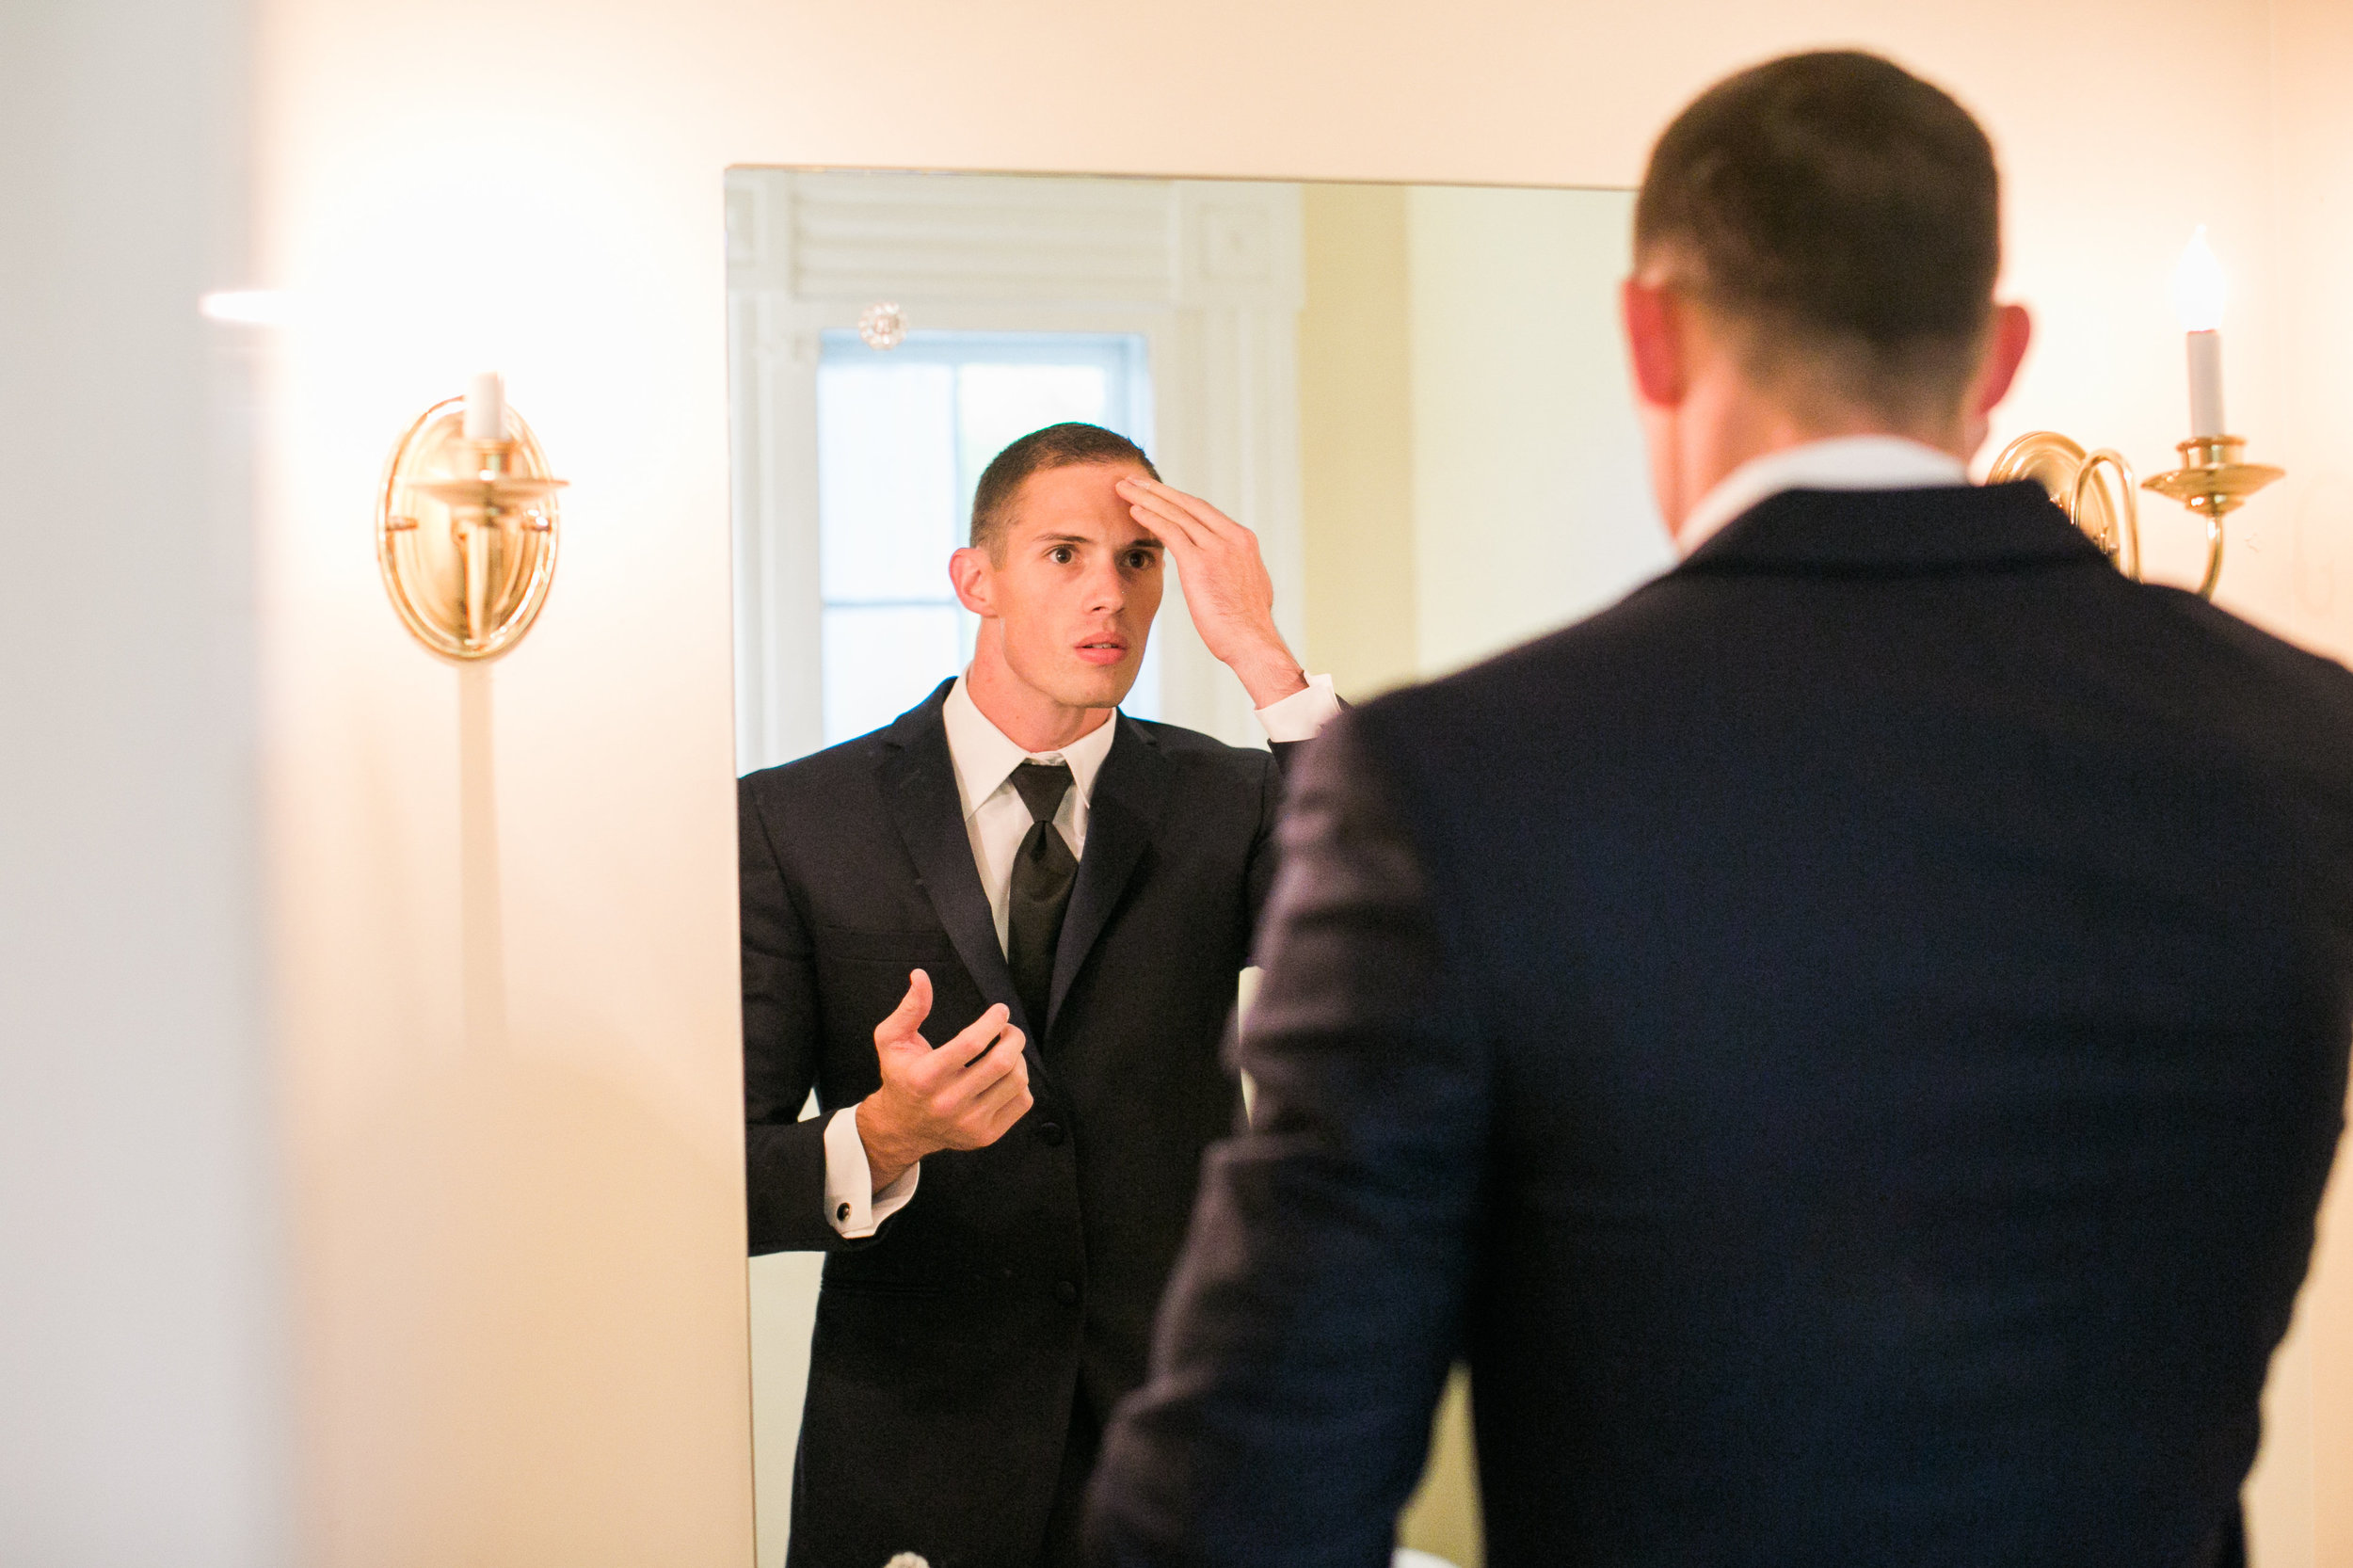 The Groom prepares for the day in his private dressing suite